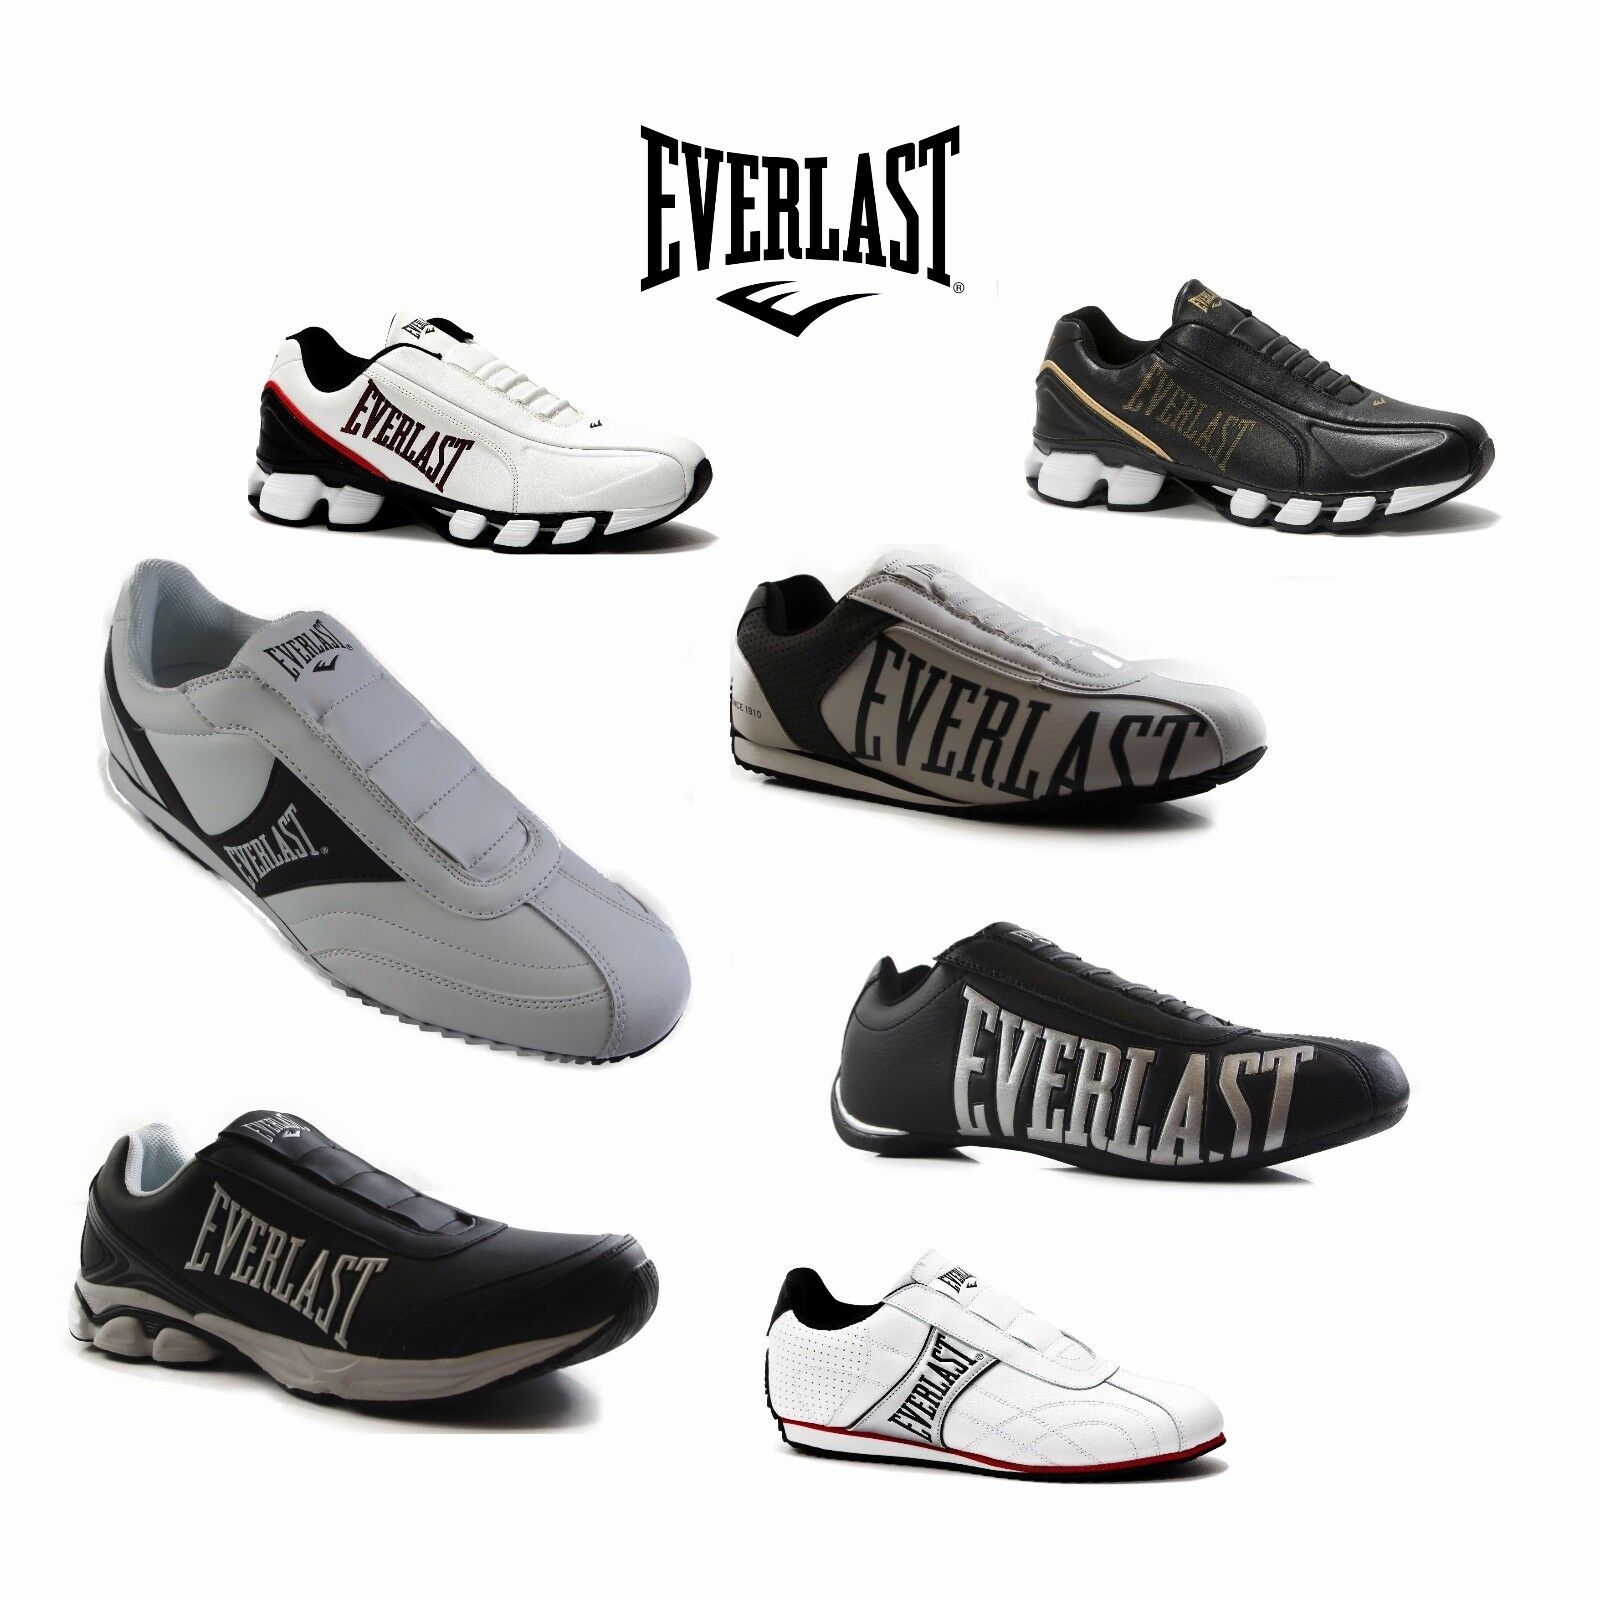 Uomo EVERLAST SLIP ON ATHLETIC SNEAKERS RUNNERS Scarpe Assorted Styles & Colours